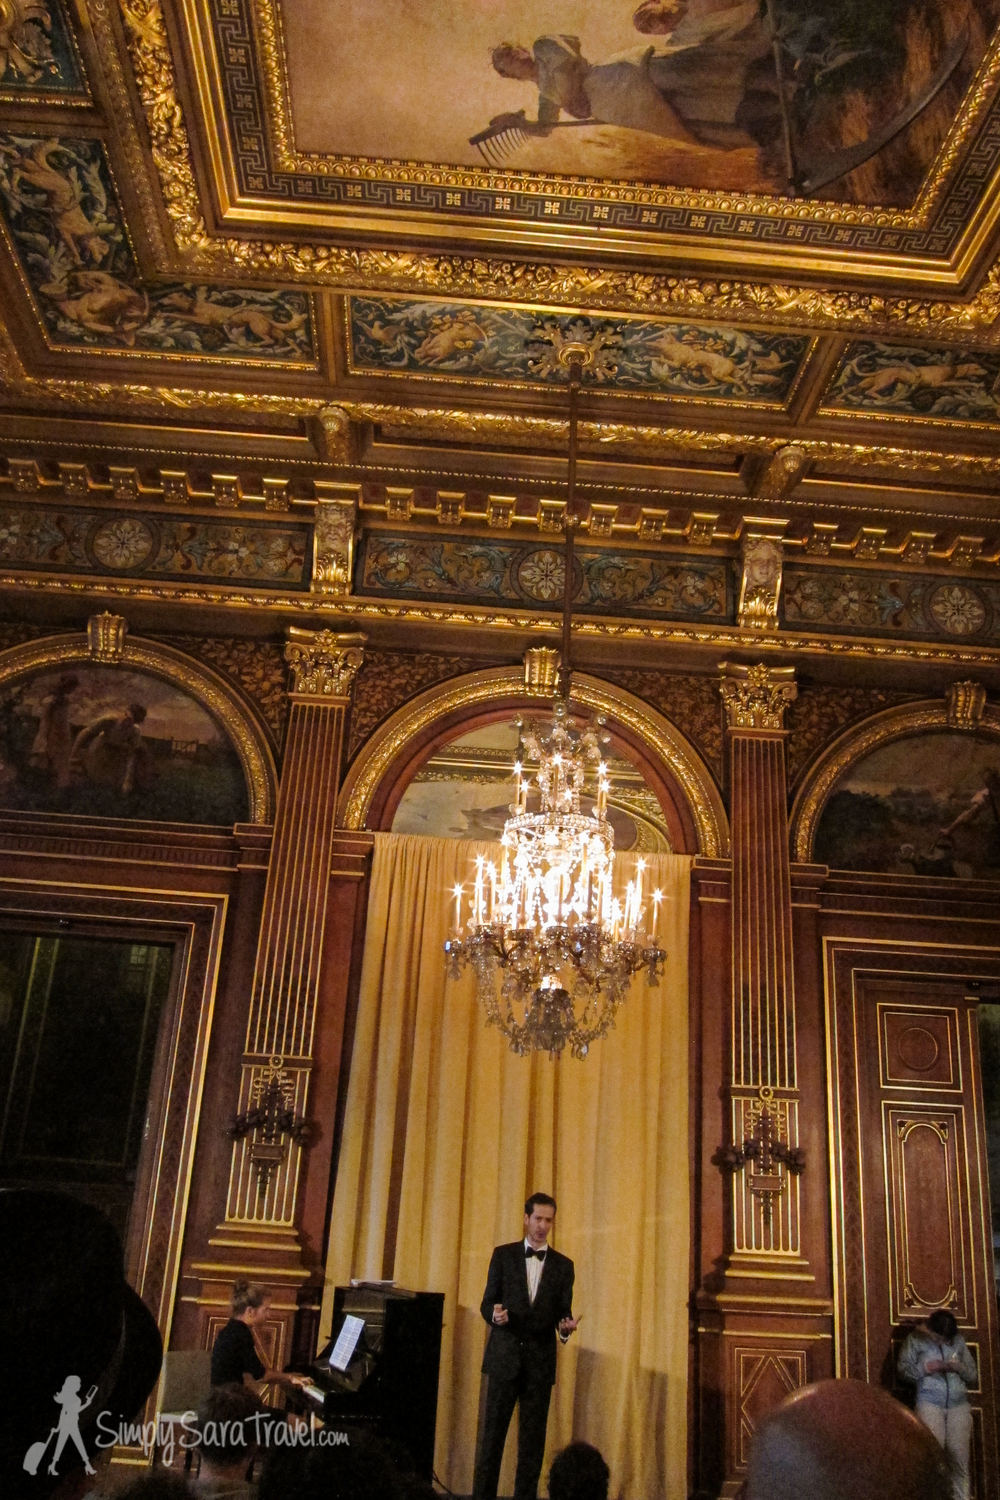 There was even an opera singer performing as I visited this room! Nothing but class here!